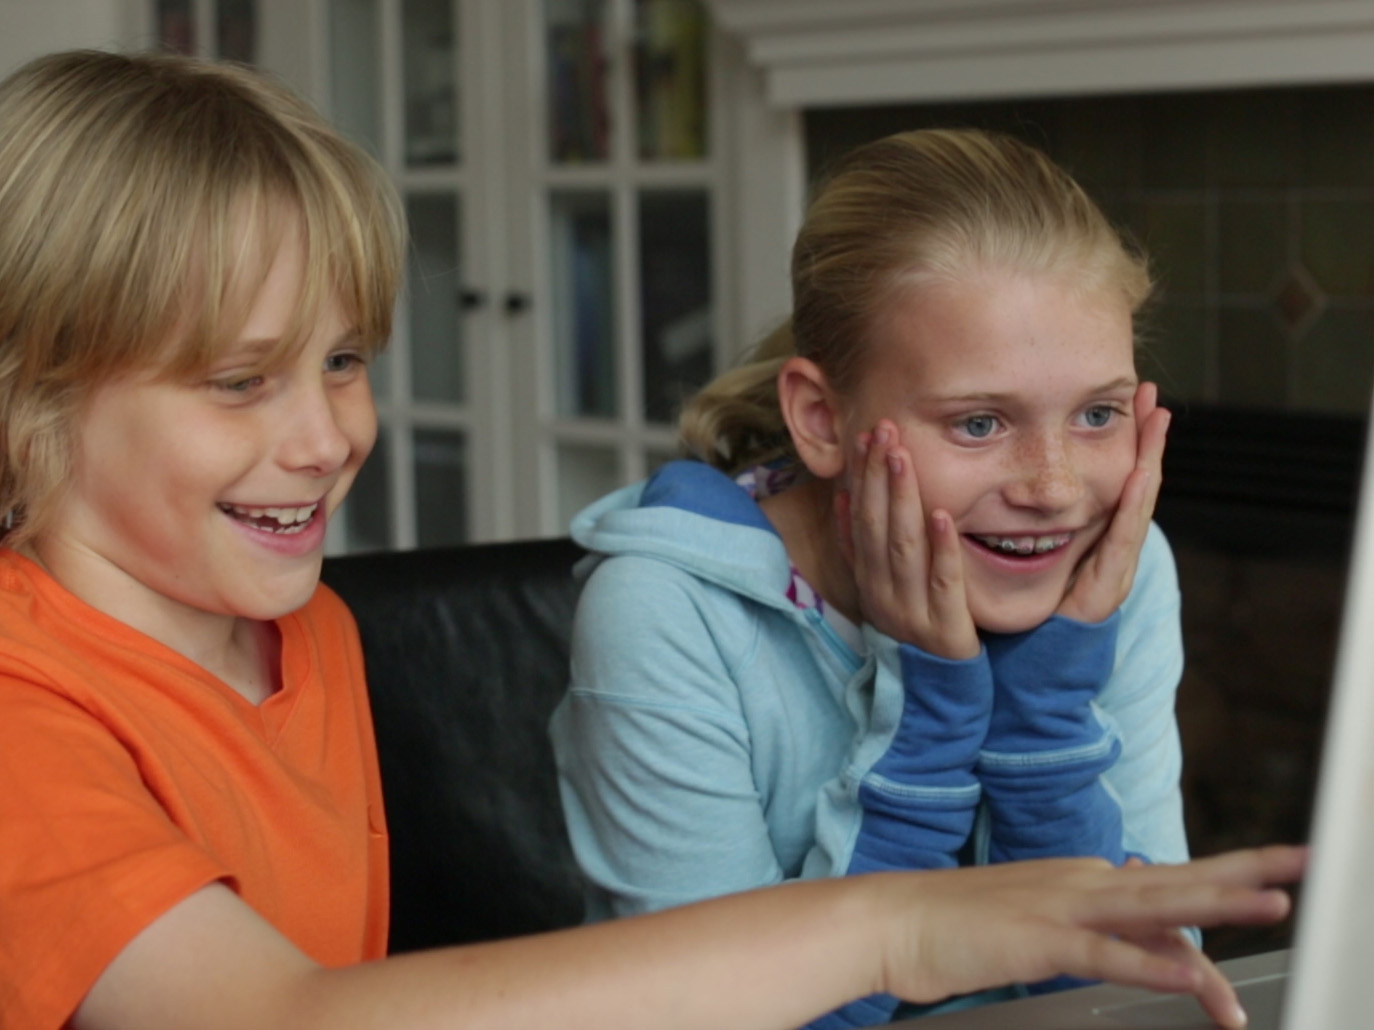 Parents Speak: Kids Should Learn to Code this Summer